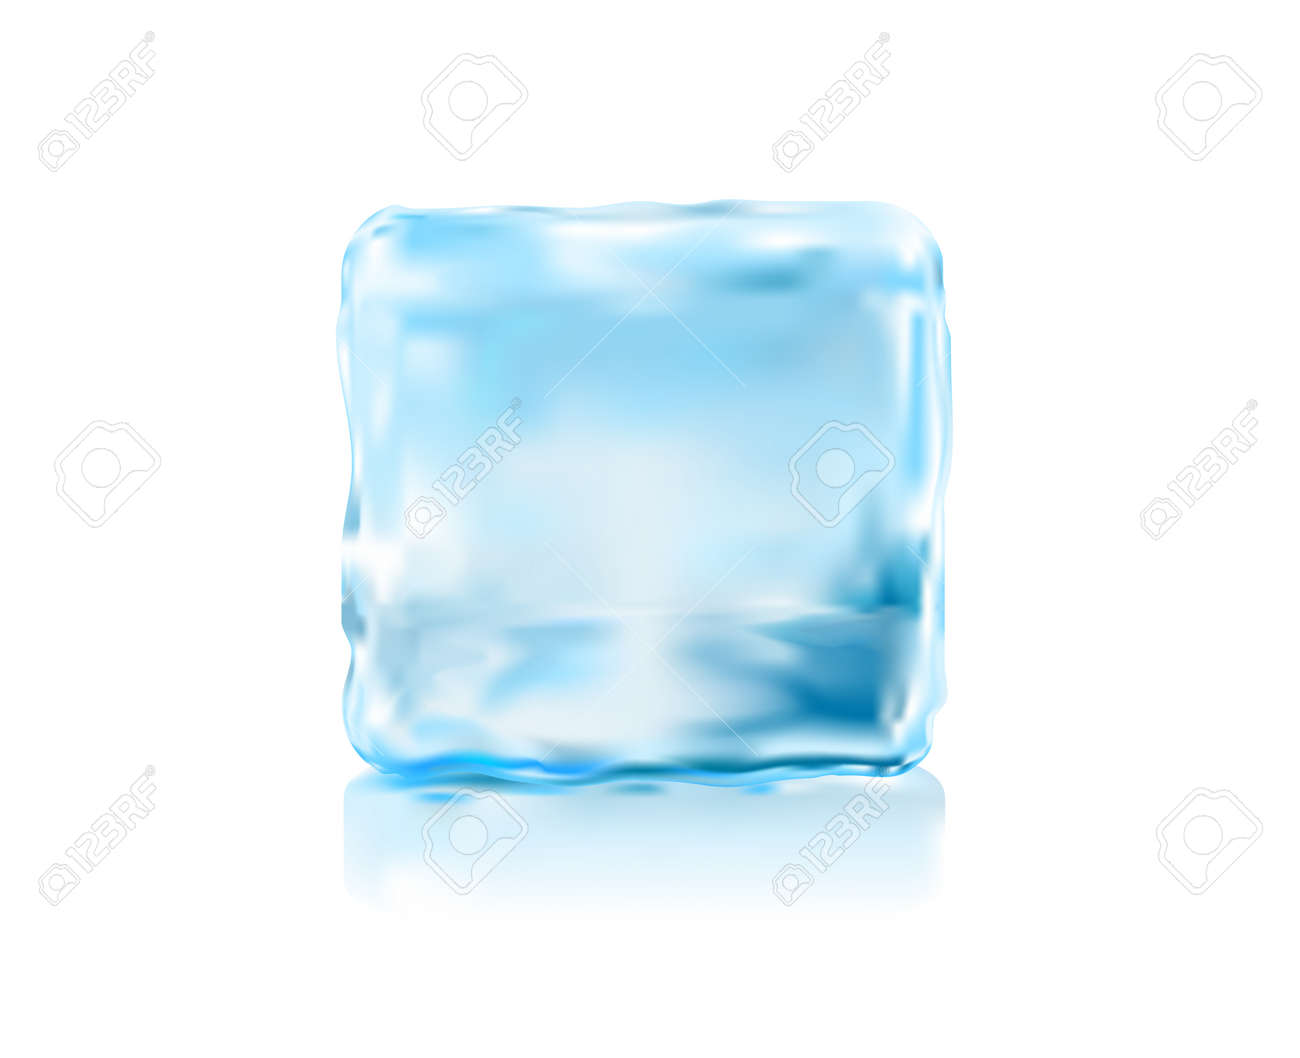 Ice Cube Front View Vector Illustration Royalty Free Cliparts